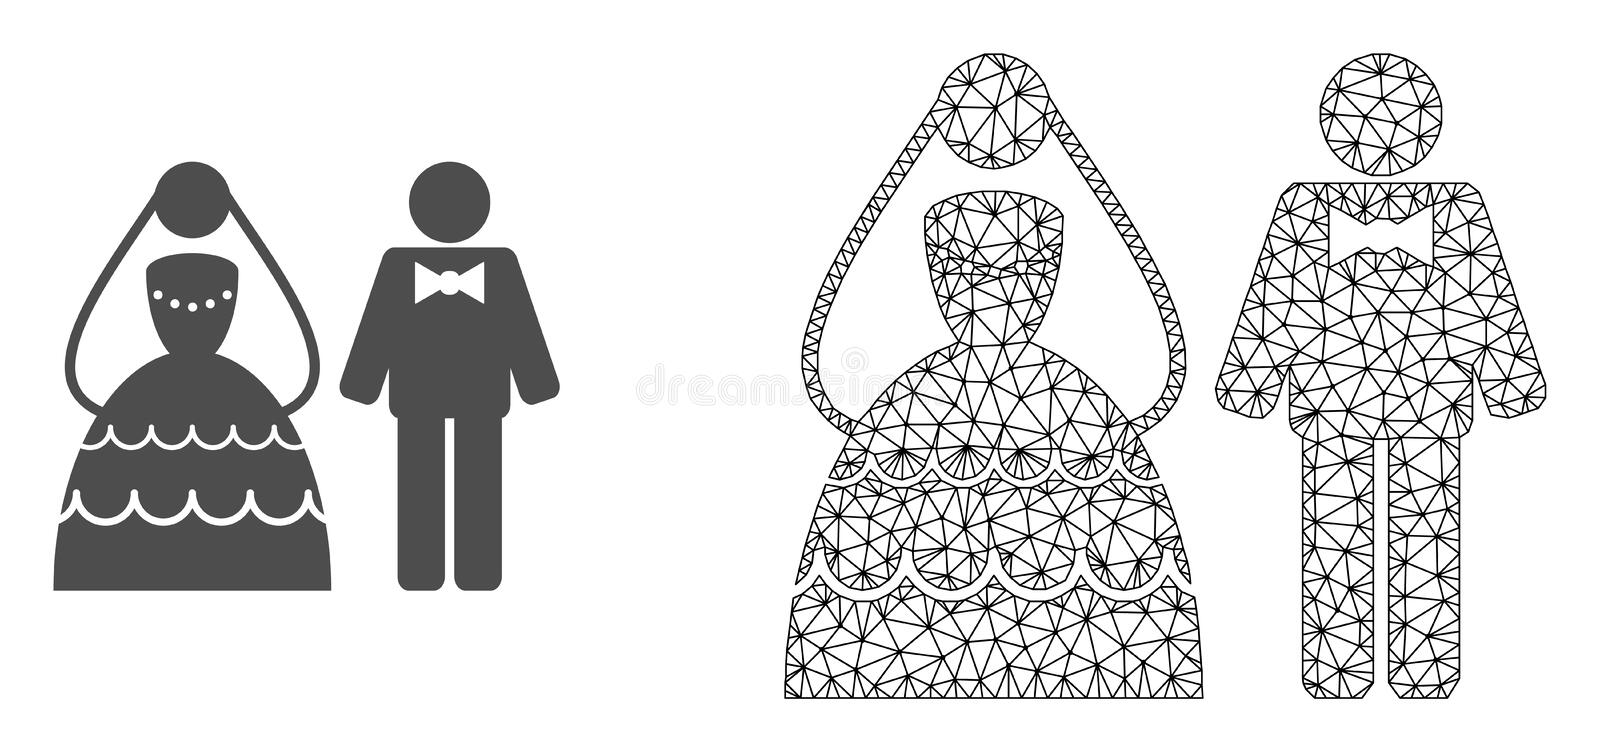 Red Mesh Wedding Couple del vector e icono plano stock de ilustración